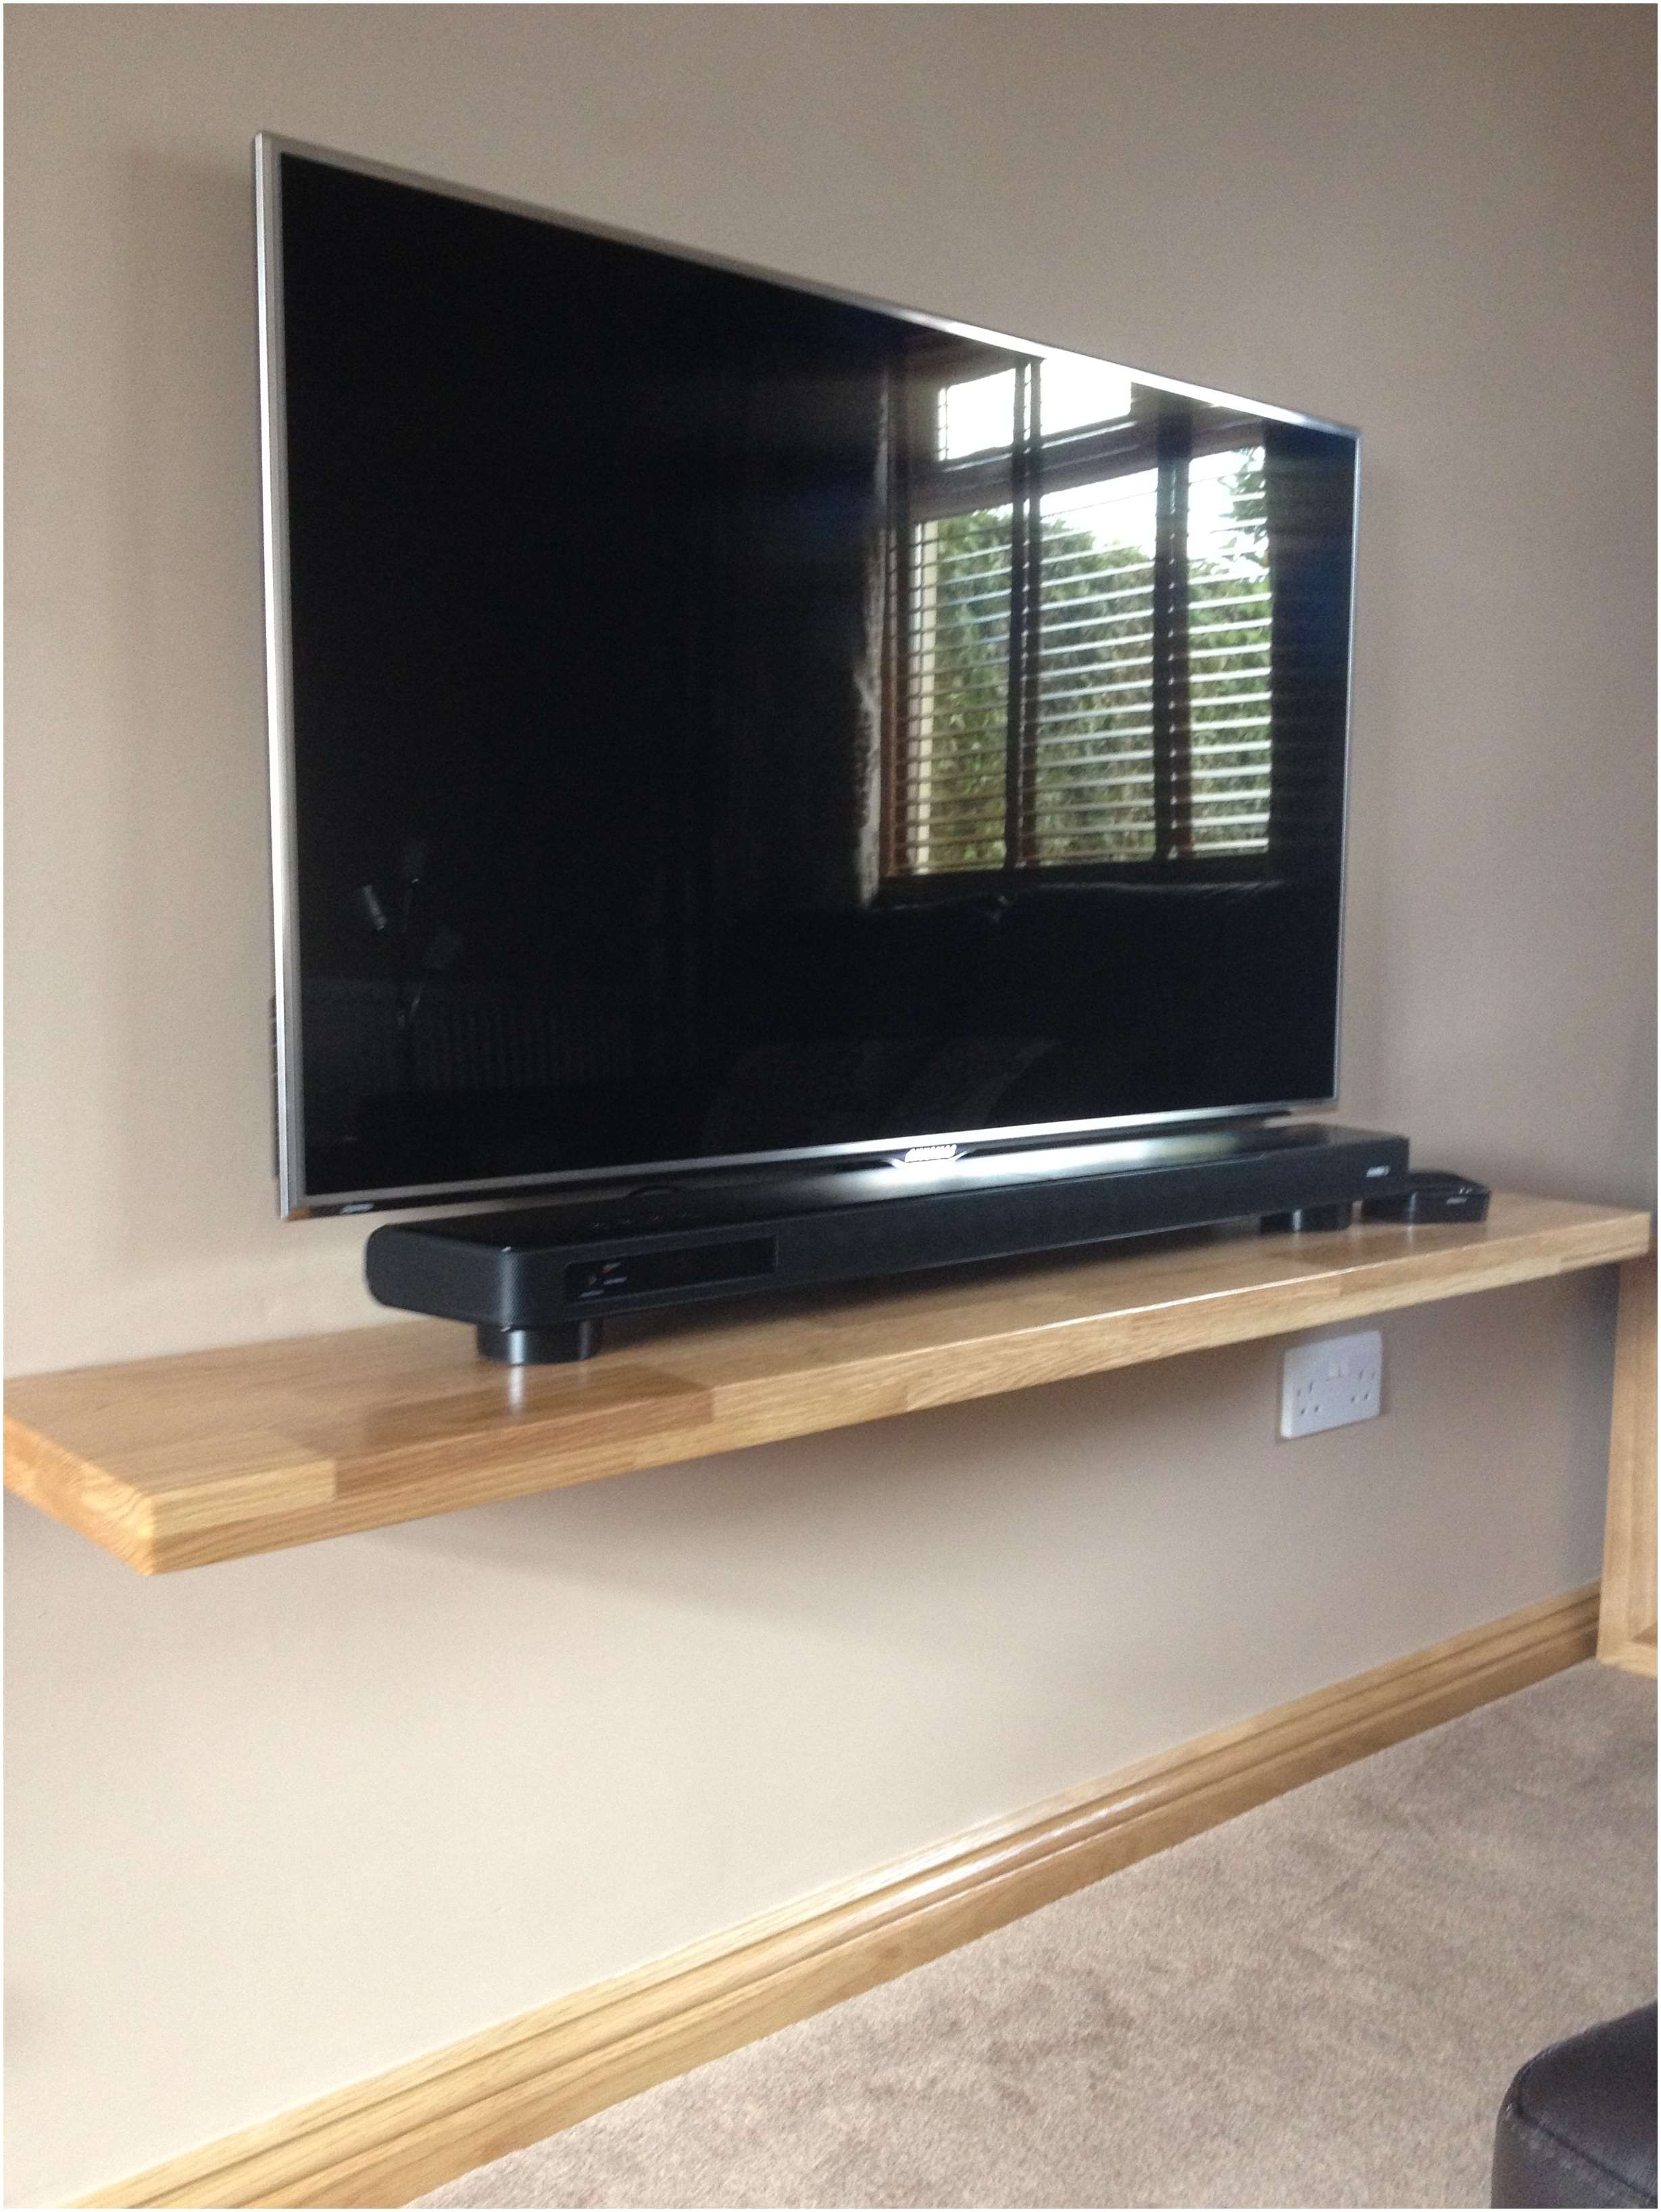 Shelves To Go Under Wall Mounted Tv 2018 Latest Under Tv Cabinets